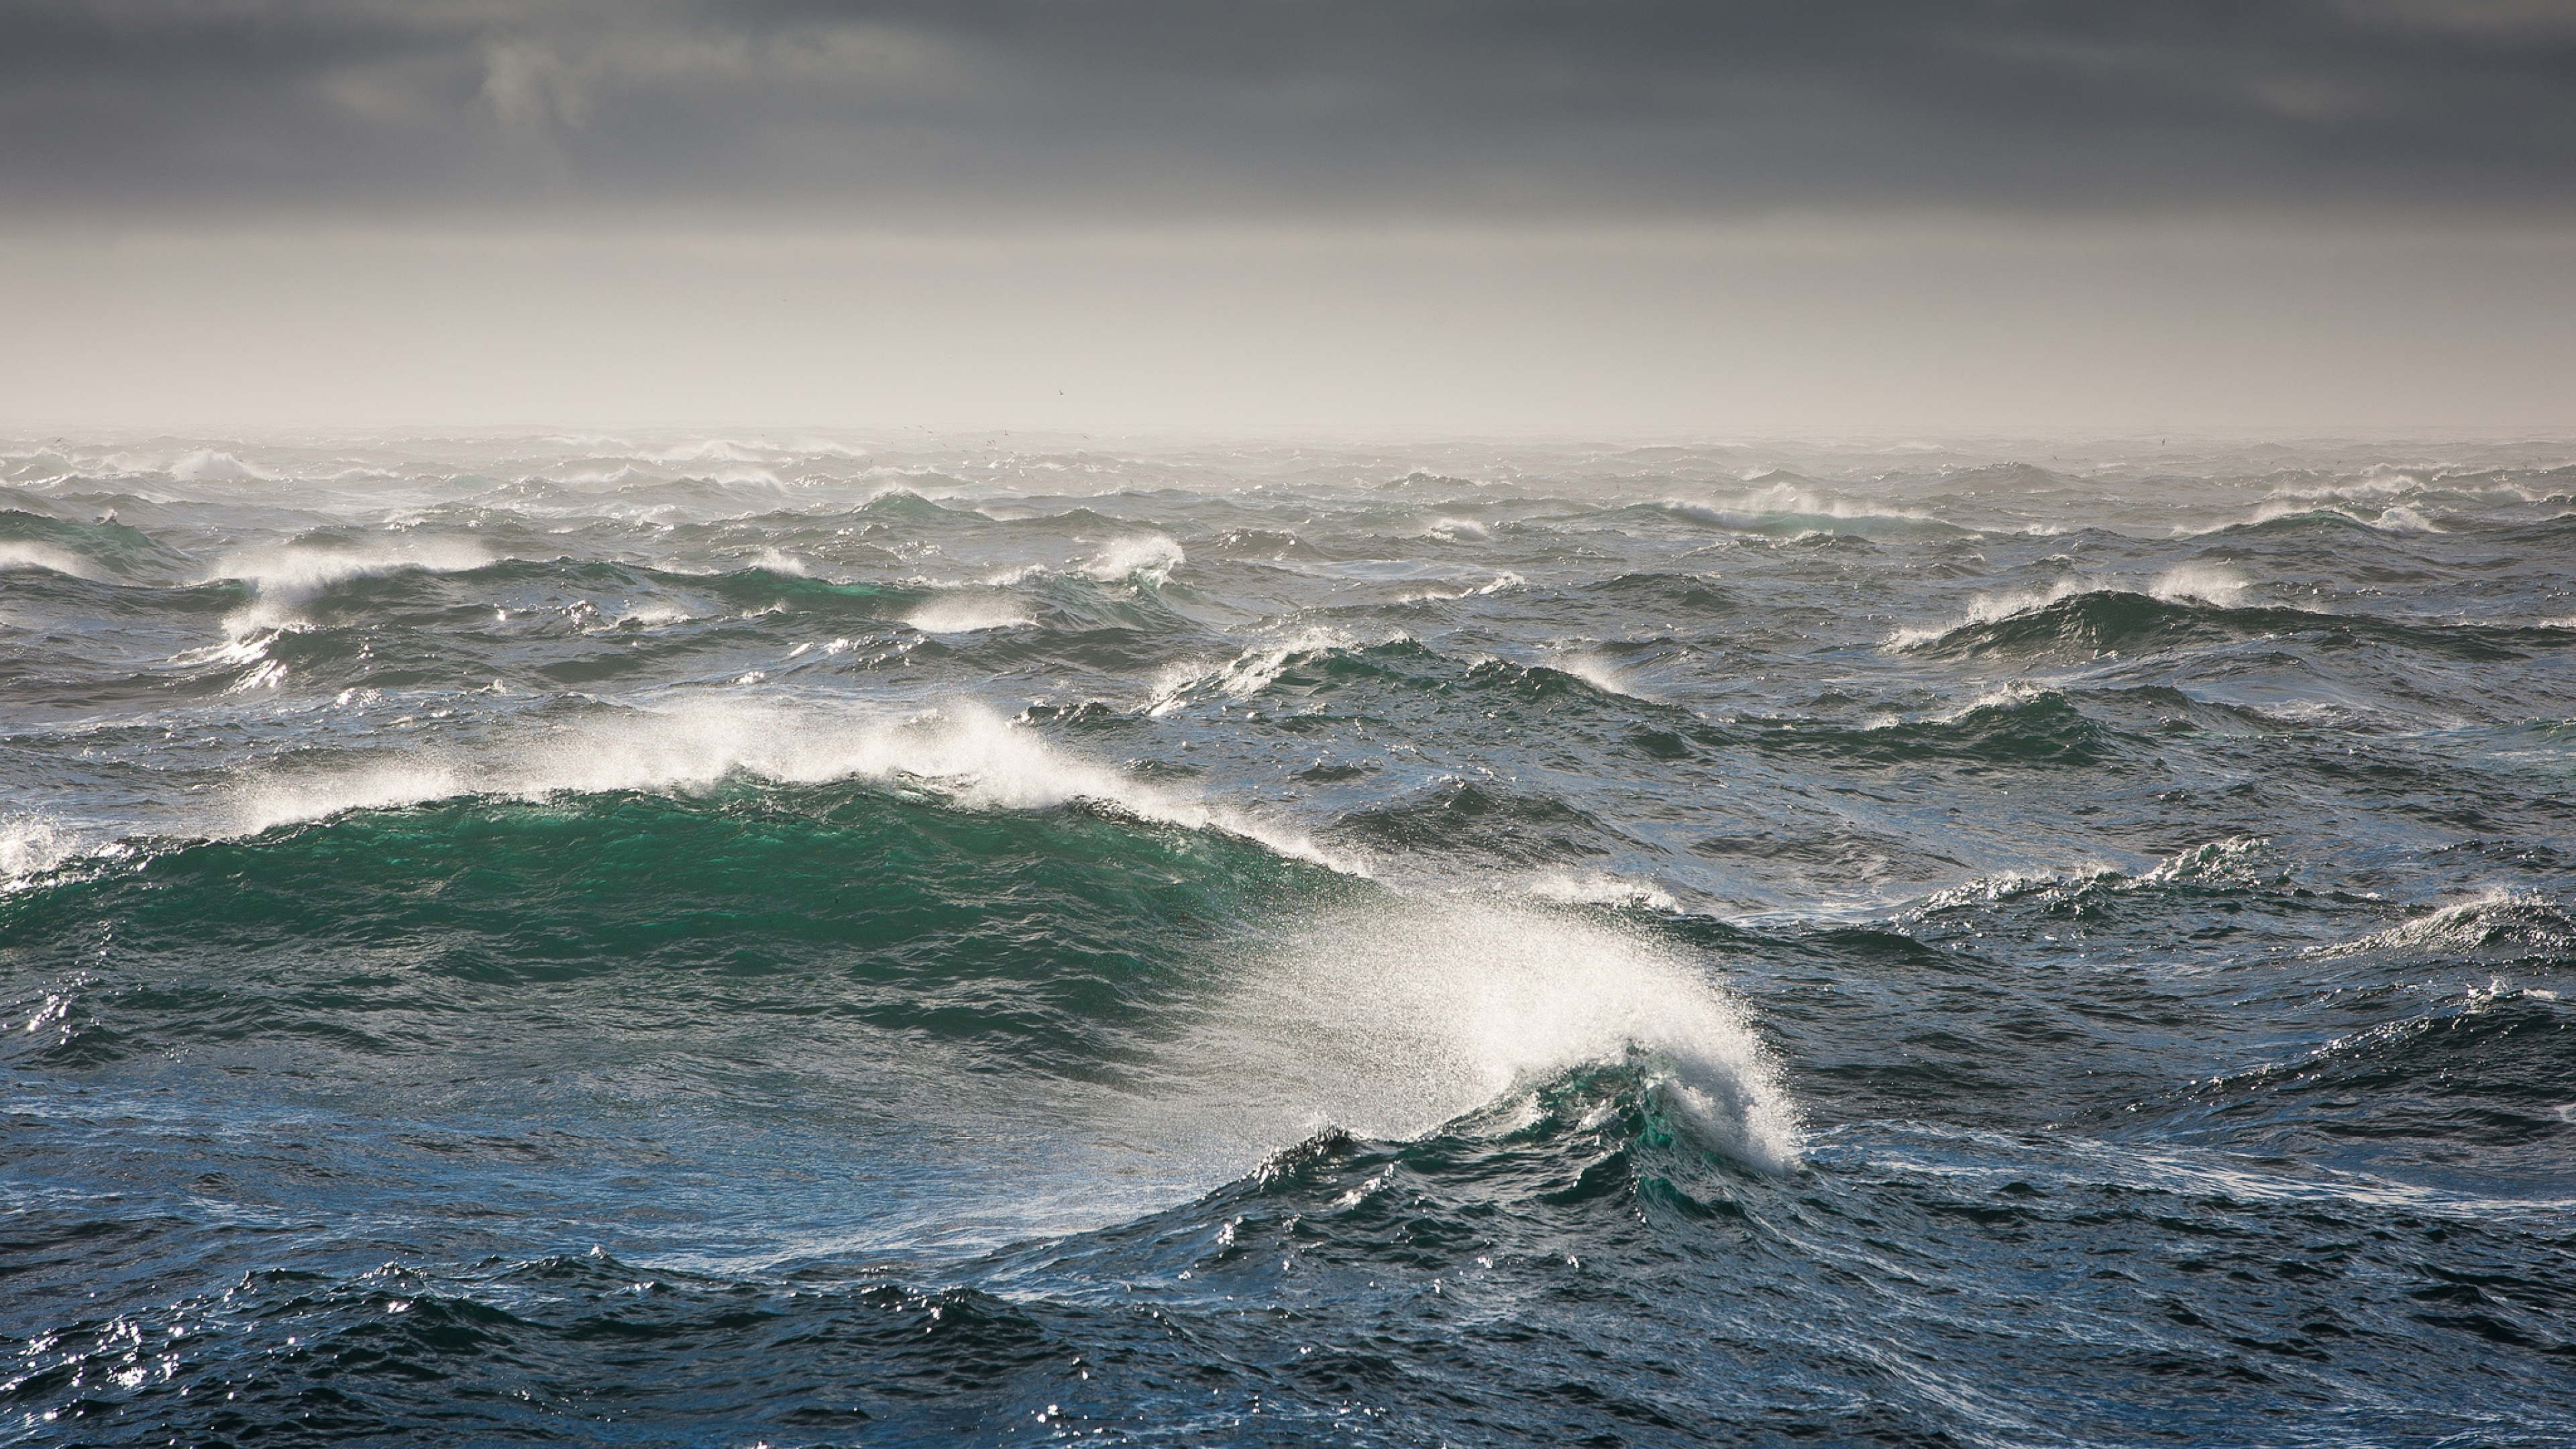 bering_sea_waves_storm_sea_81031_3840x2160